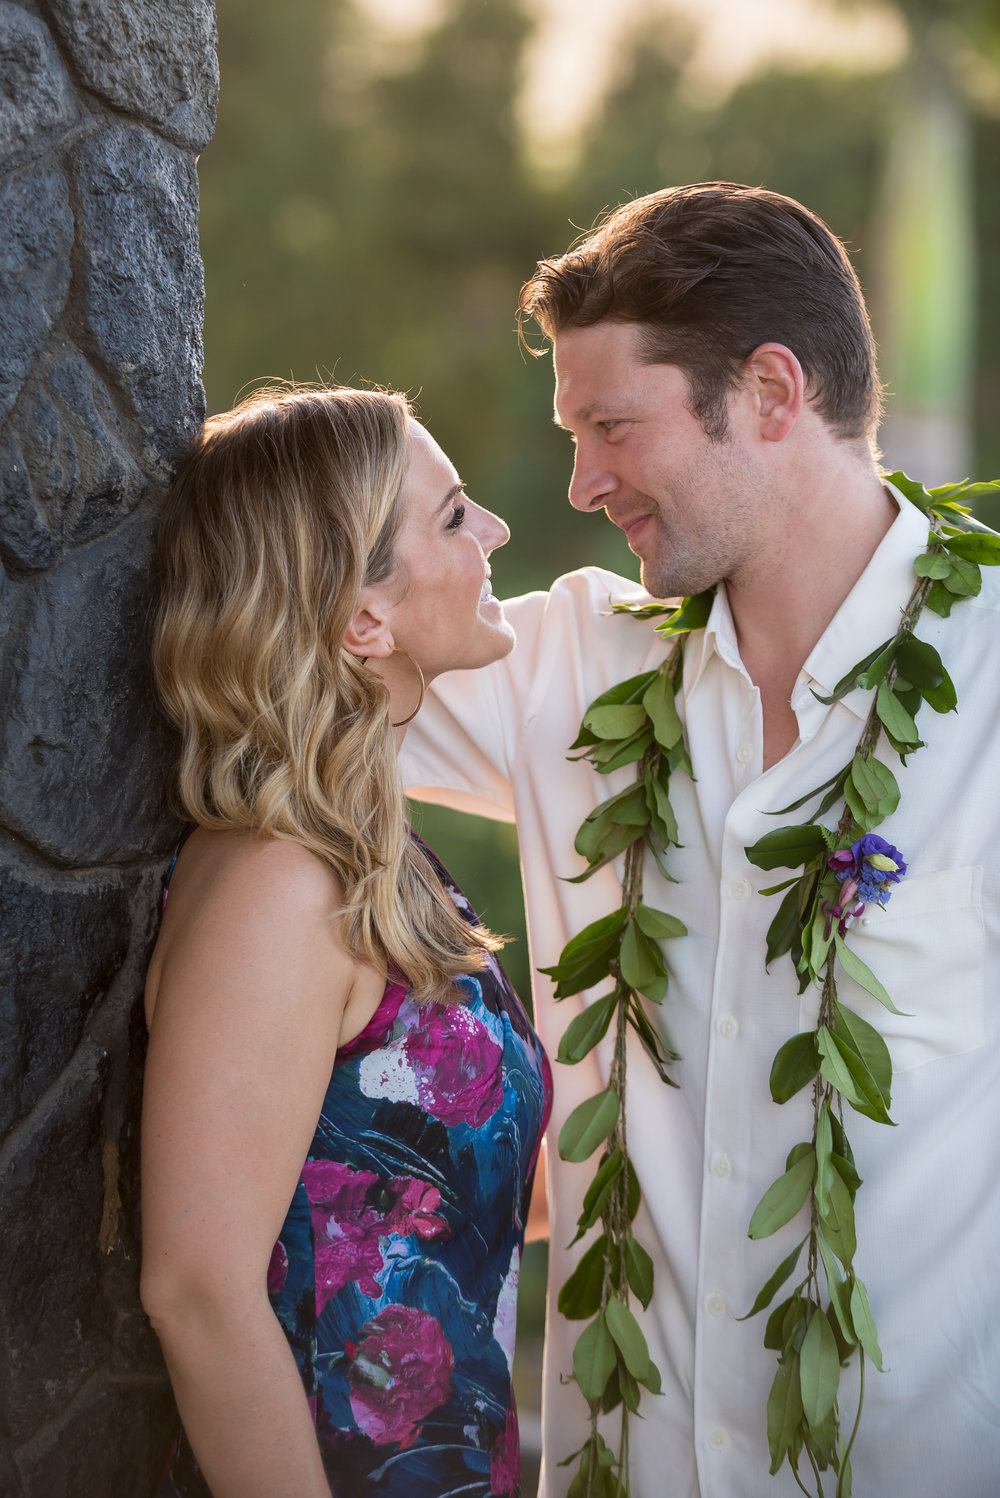 A couple smiles at each other during a resort sunset in hawaii, draped in lei and florals